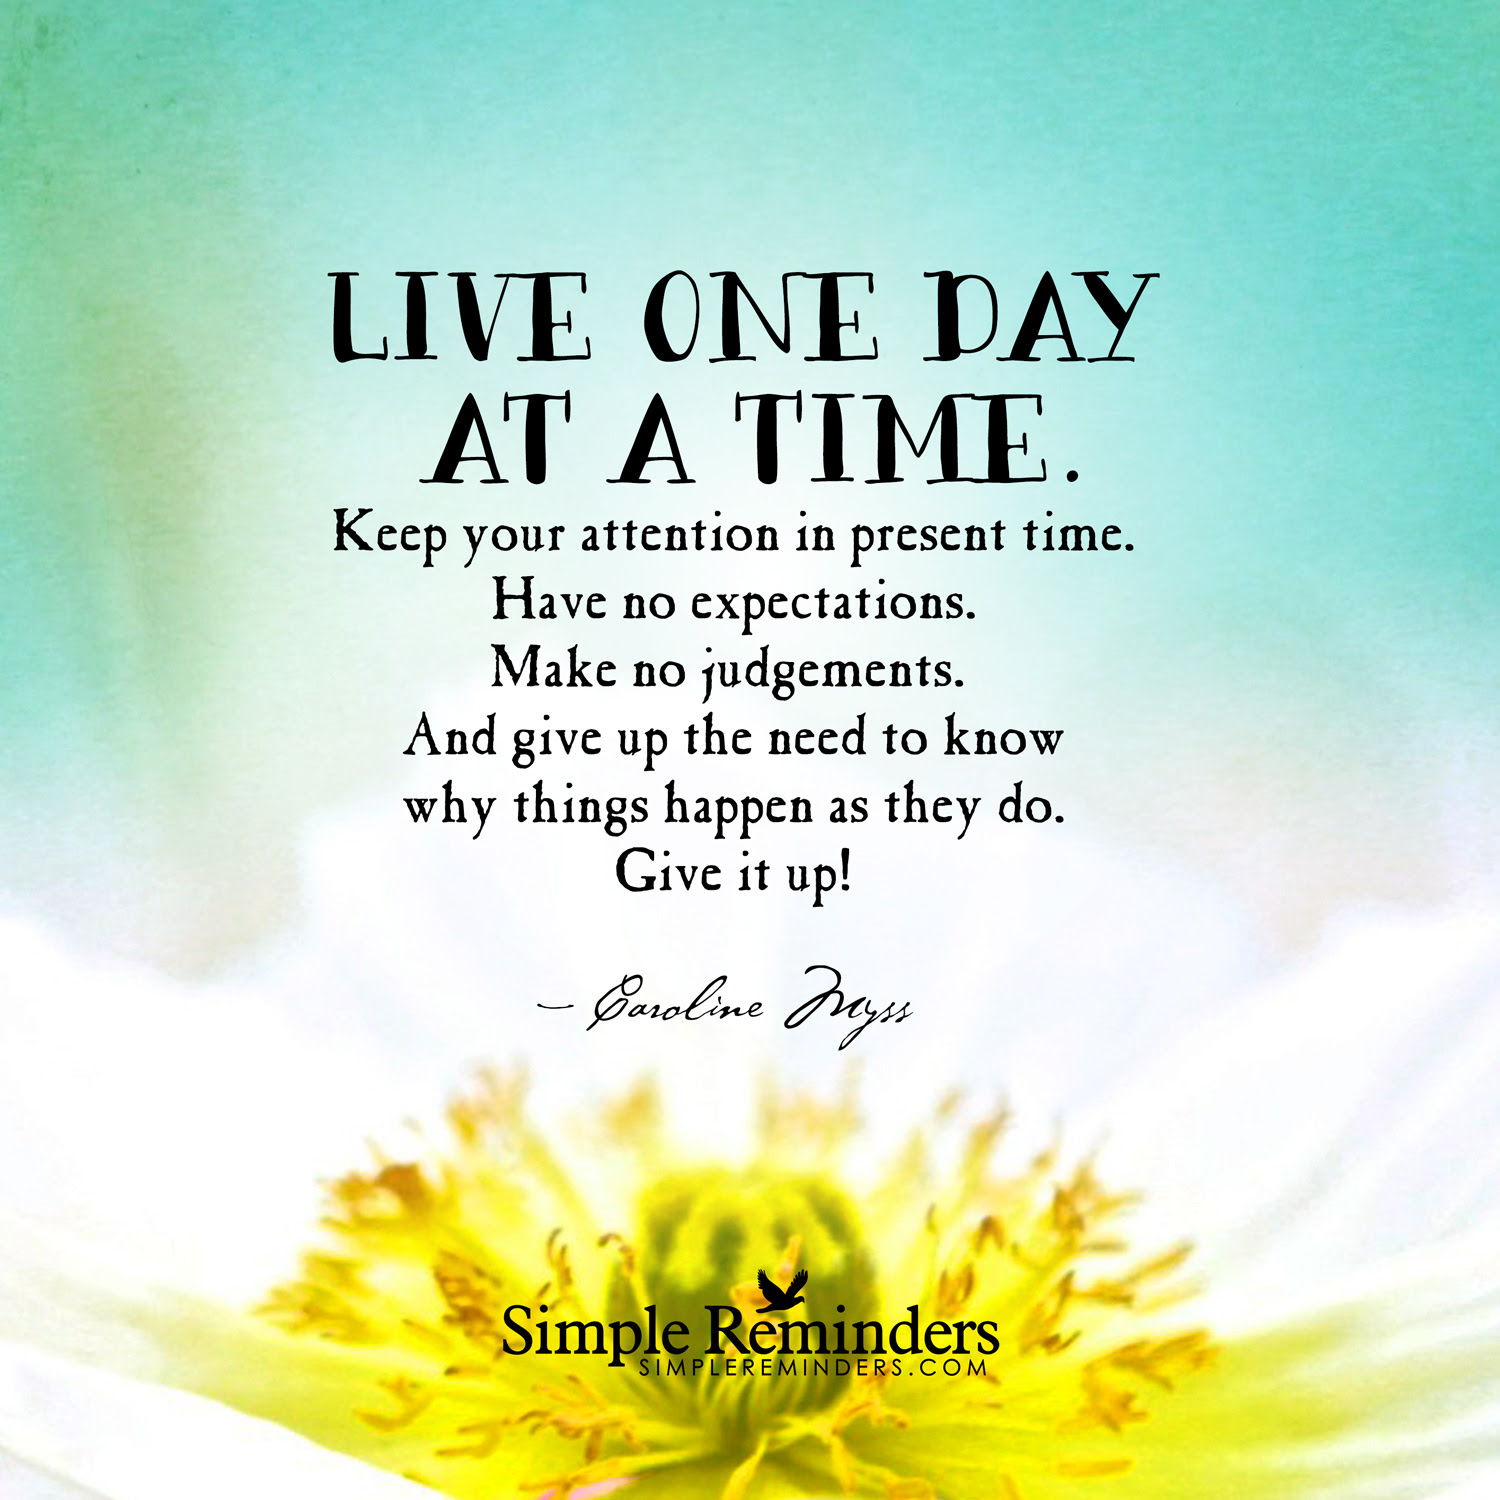 Quotes About One Day At A Time 145 Quotes